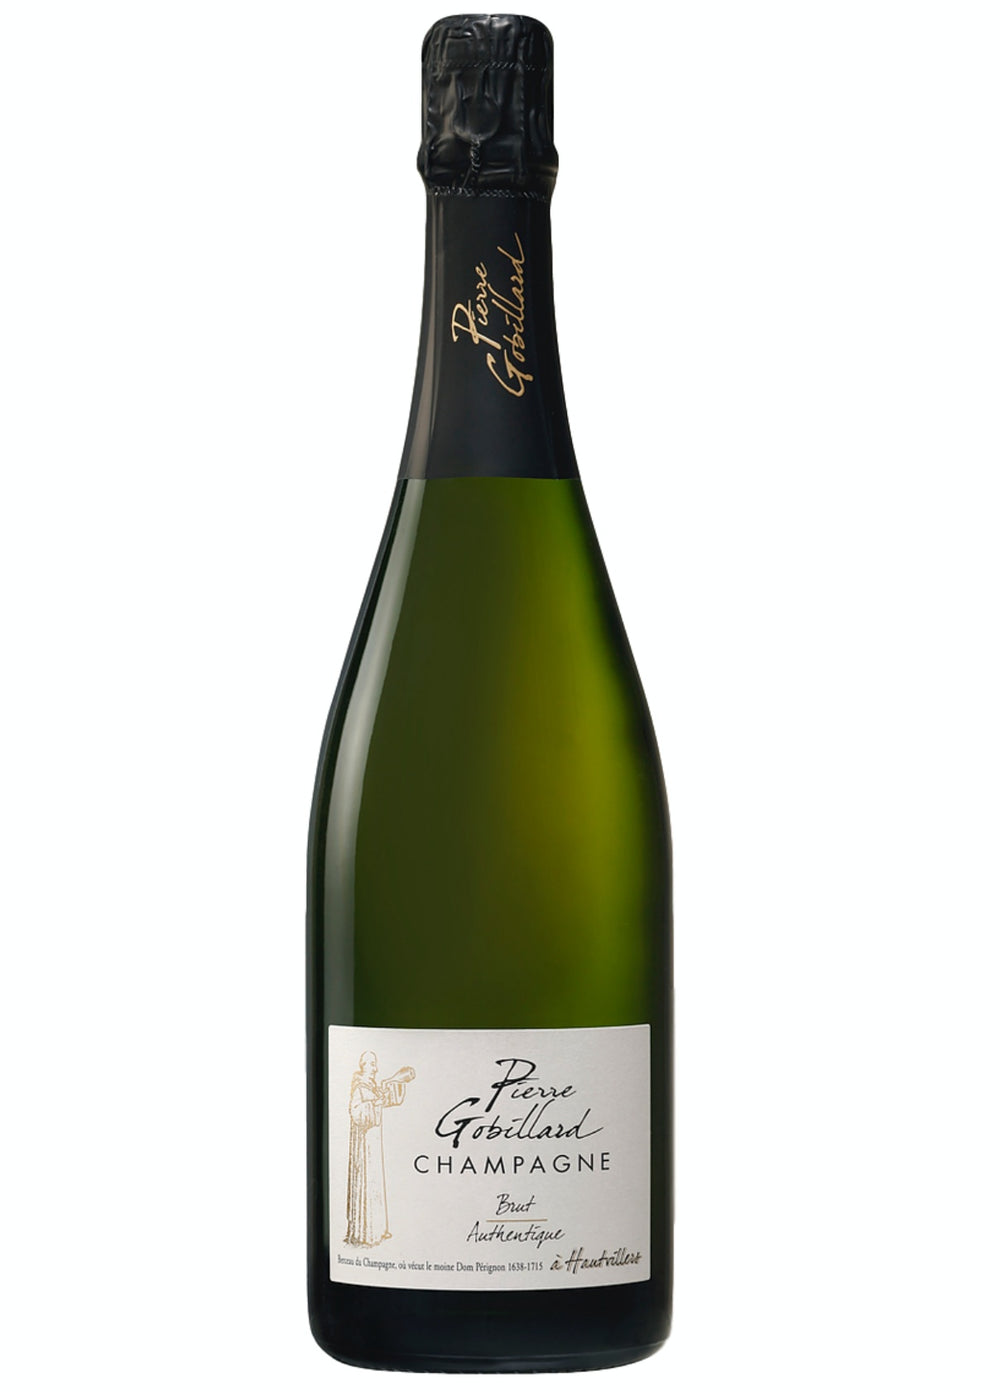 Pierre Gobillard - Brut Authentique